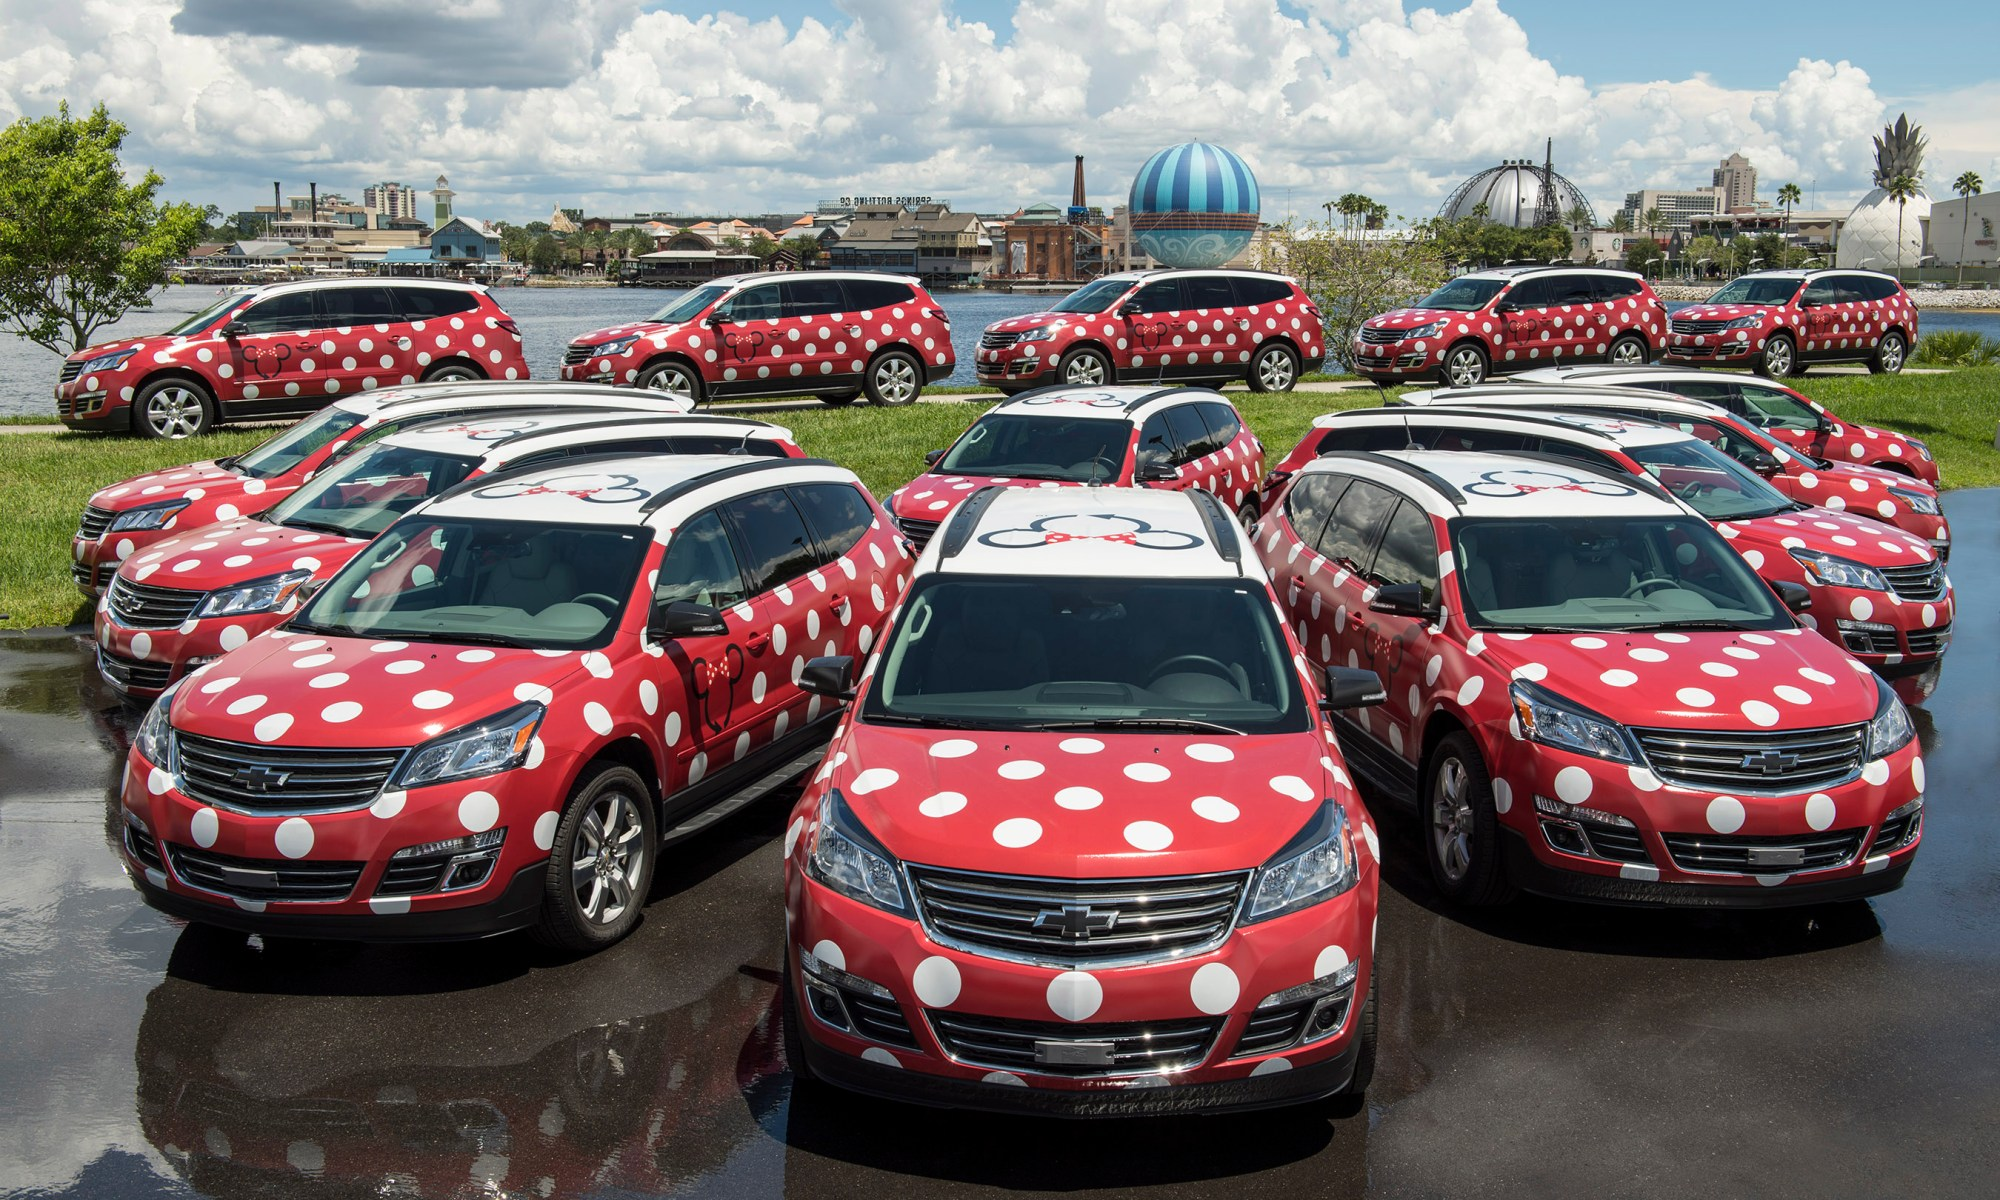 Minnie Van Service, Walt Disney World